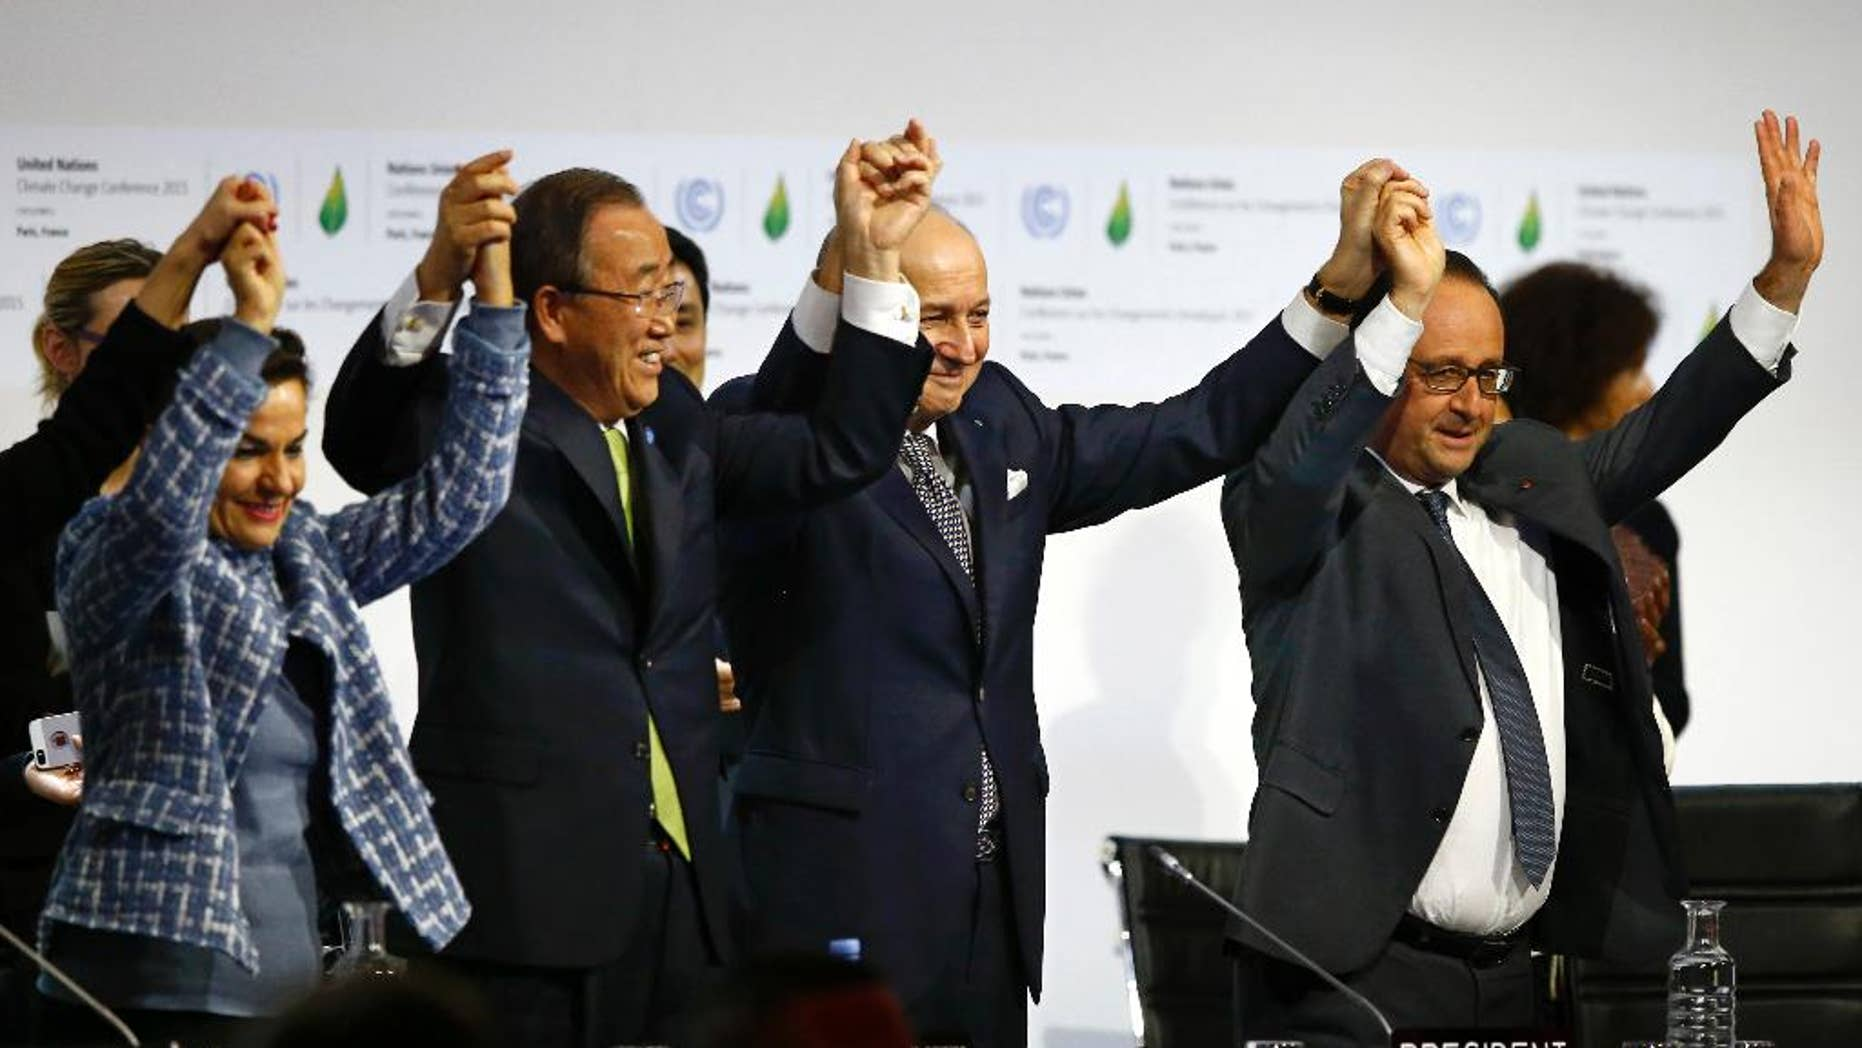 FILE - In this Dec. 12, 2015, file photo, French President Francois Hollande, right, French Foreign Minister and president of the COP21 Laurent Fabius, second right, United Nations climate chief Christiana Figueres, left, and United Nations Secretary General Ban Ki-moon hold their hands up in celebration after the final conference at the COP21, the United Nations conference on climate change, in Le Bourget, north of Paris. A team of top scientists are telling world leaders to stop congratulating themselves for a Paris agreement to fight climate change because if more isn't done the world will likely hit the agreed-upon dangerous warming level in about 35 years.  (AP Photo/Francois Mori, File)